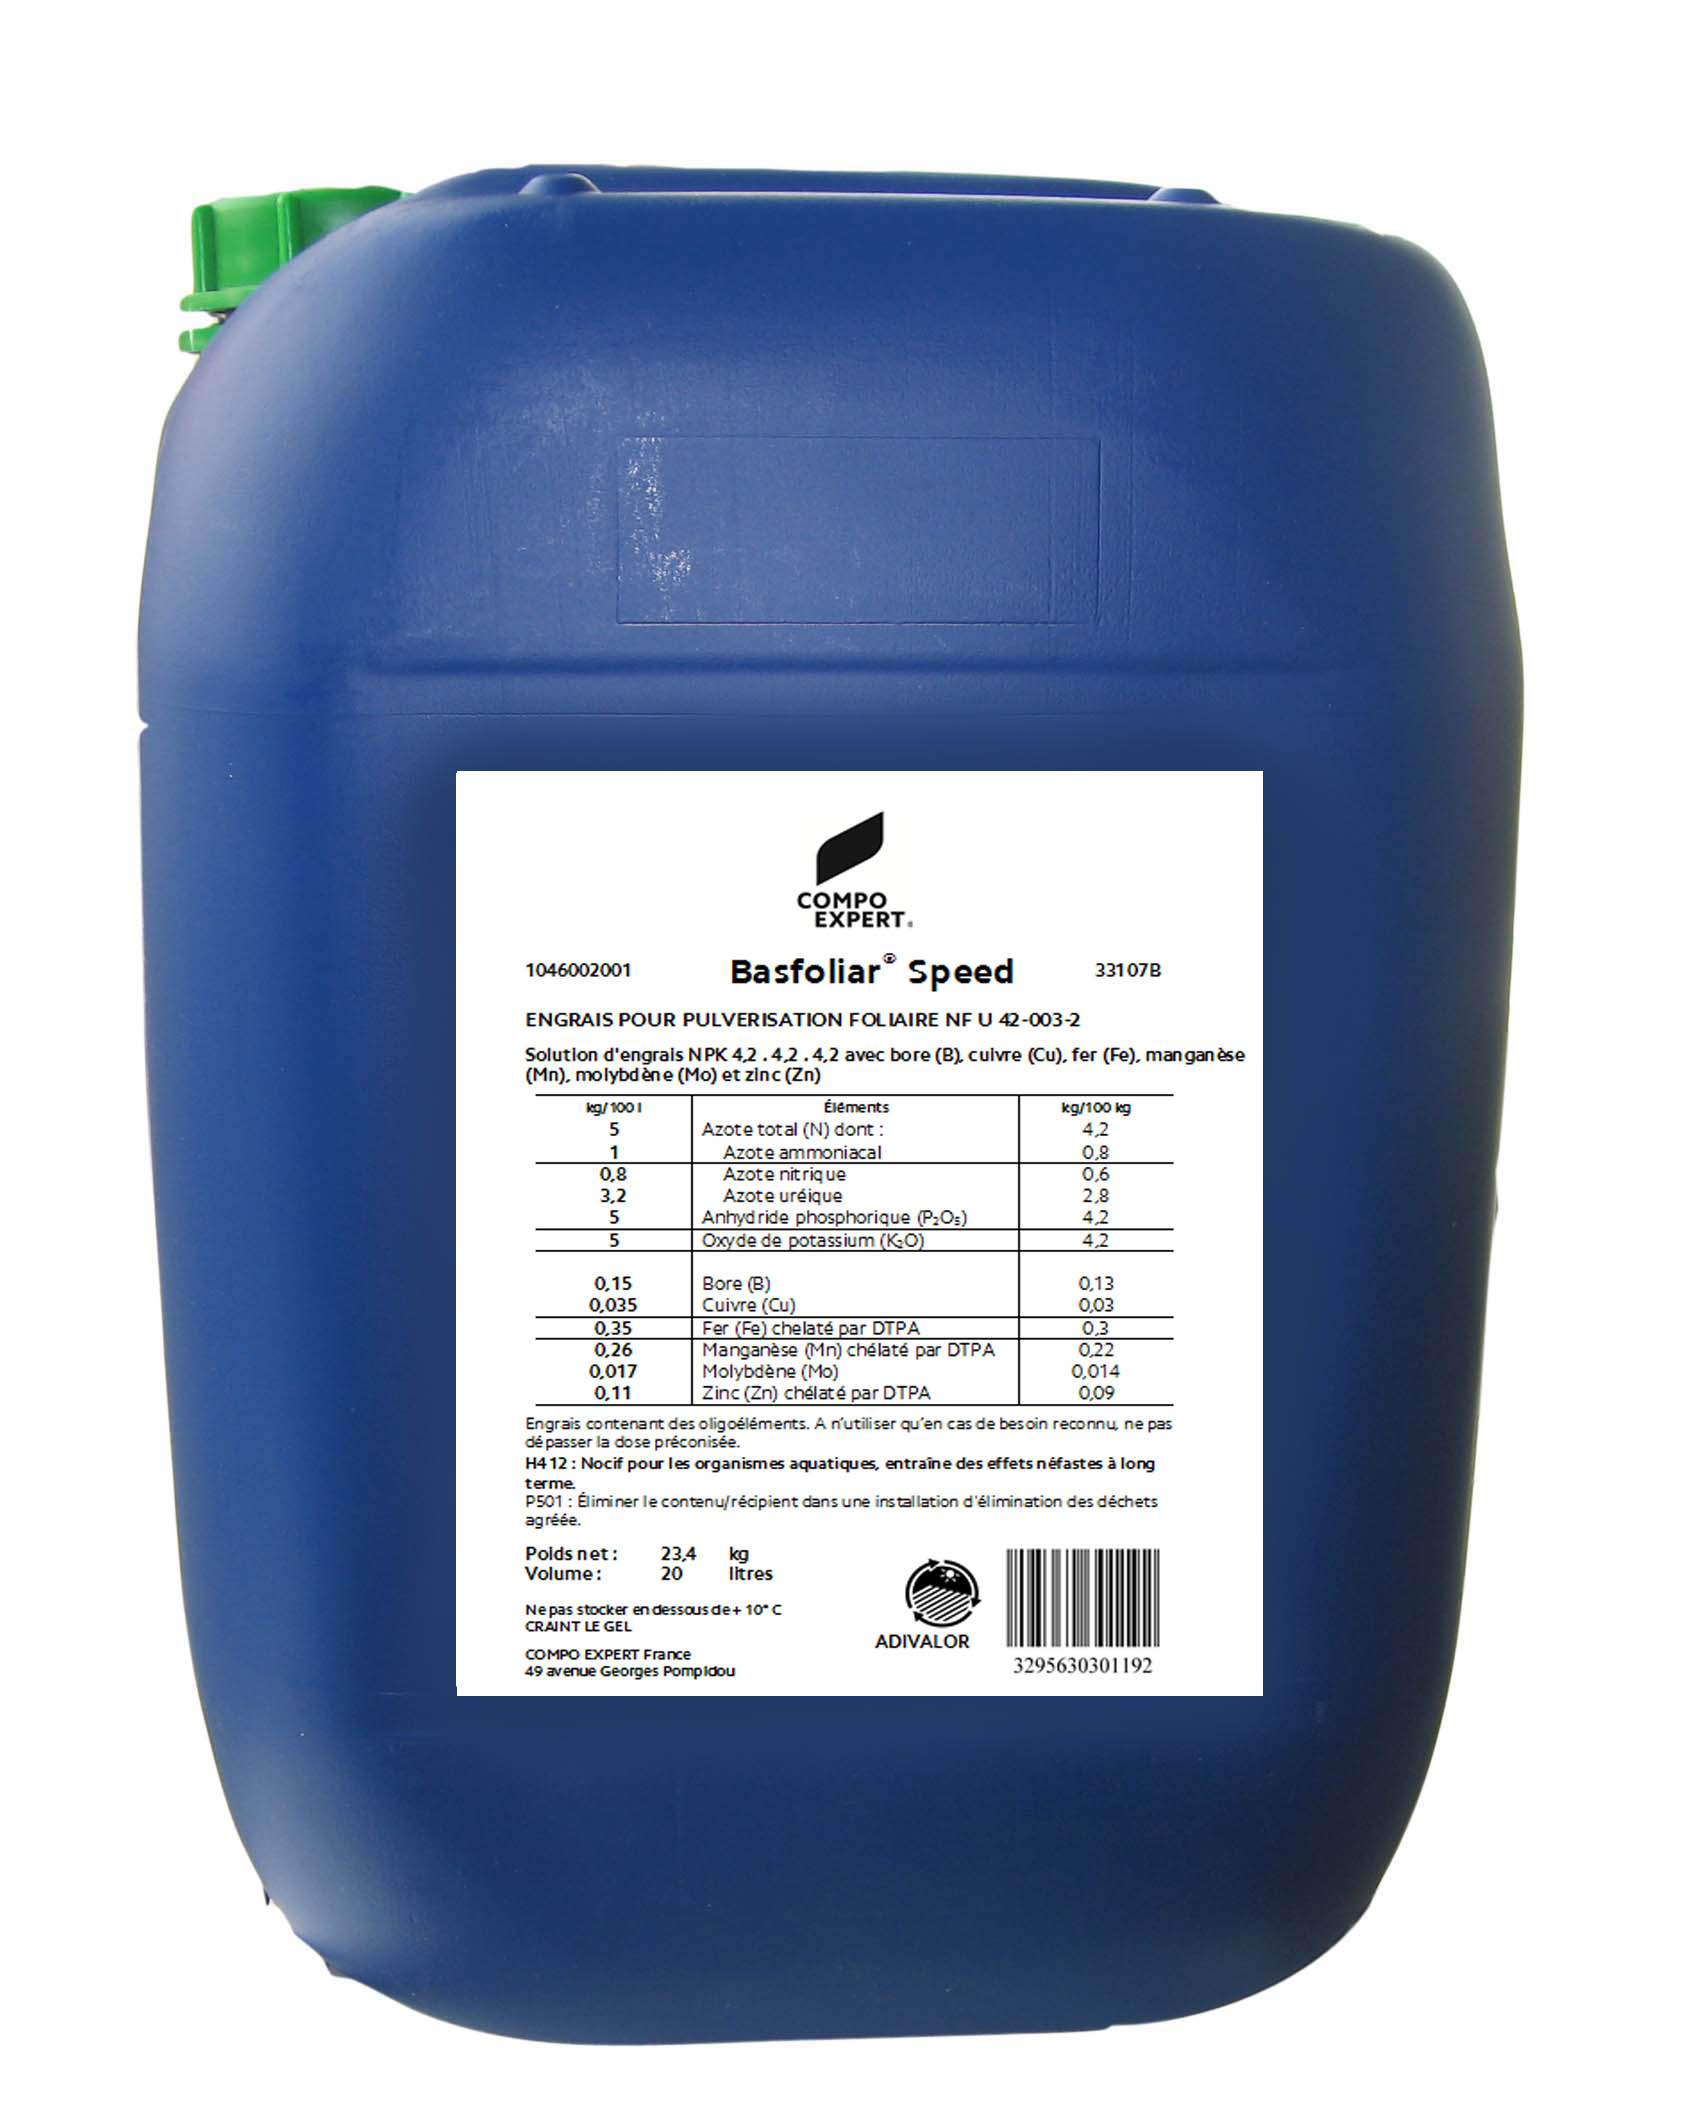 Basfoliar Speed